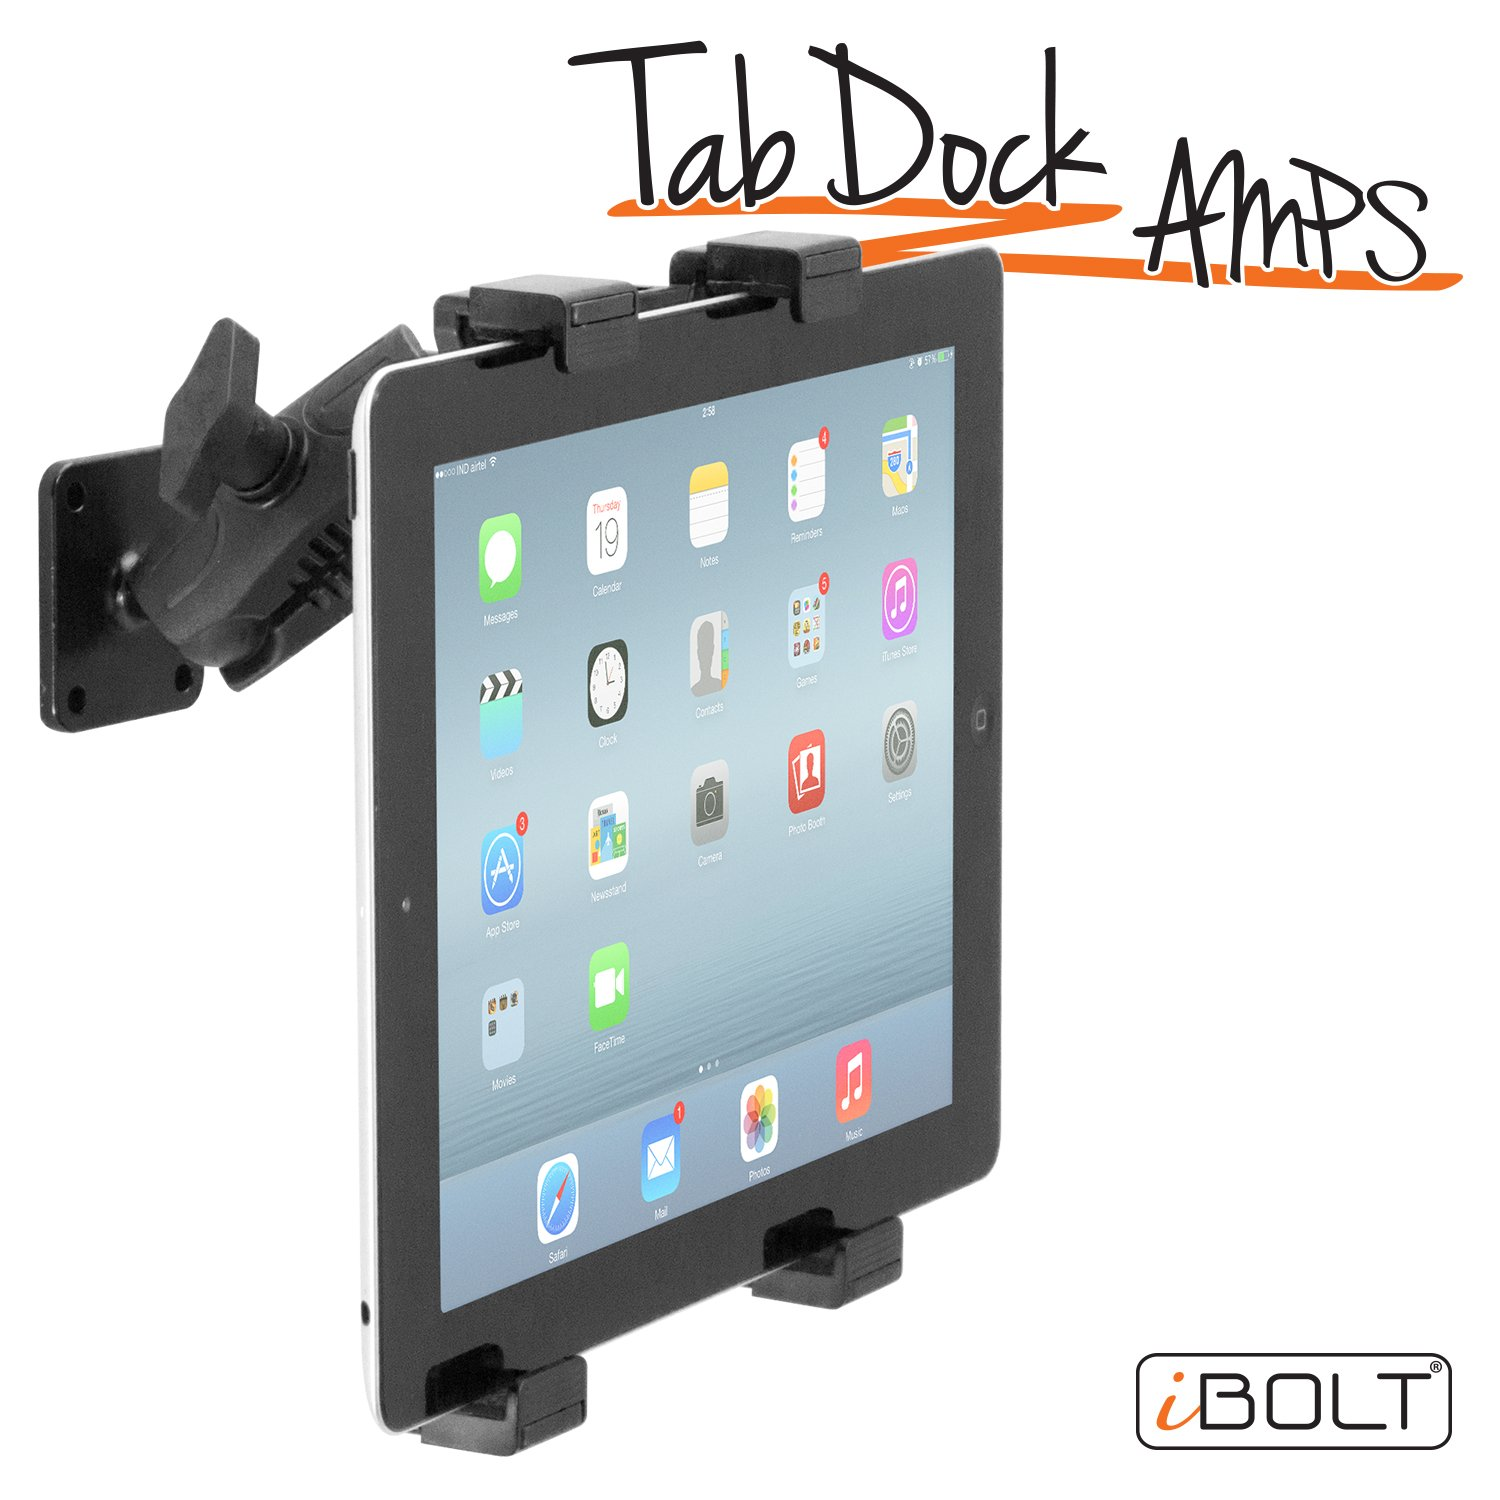 """iBOLT TabDock AMPs - Heavy Duty Drill Base Mount for All 7"""" - 10"""" Tablets (iPad, Samsung Tab) for Cars, Desks, Countertops: Great for Commercial Vehicles, Trucks, Homes, Schools, and Businesses"""